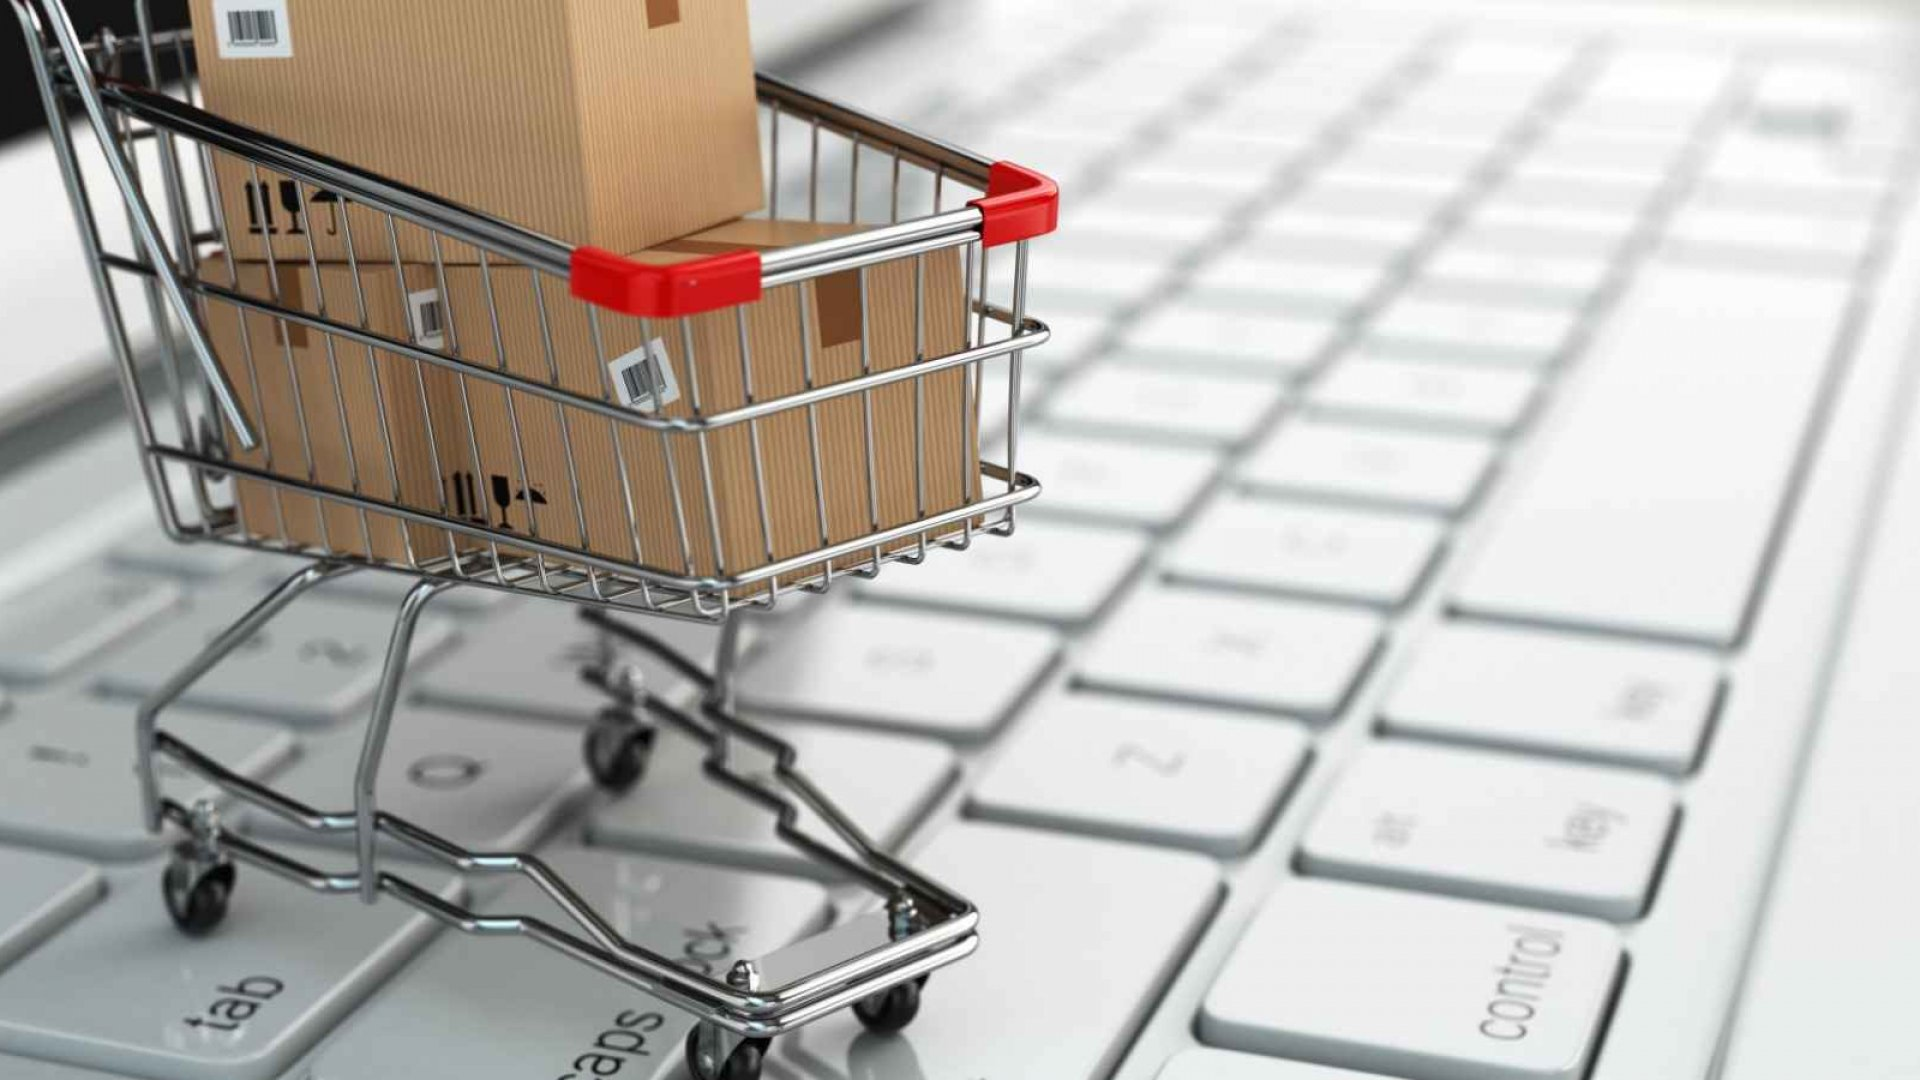 5 Steps to Better Manage Your E-commerce Store on Mobile